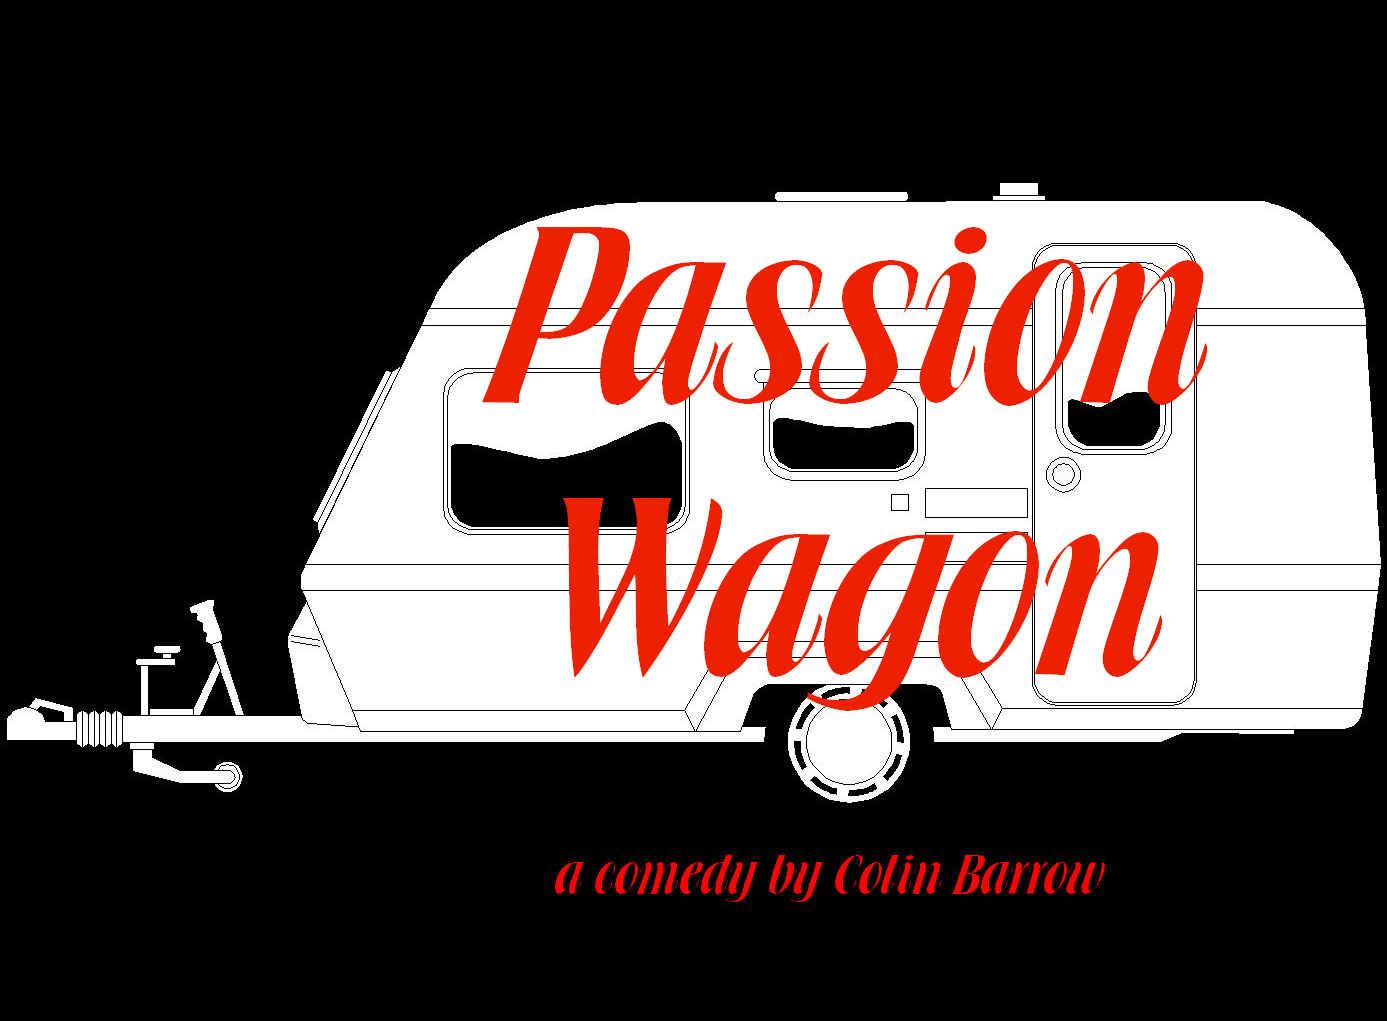 Comedy Play Script: 'Passion Wagon' by Colin Barrow